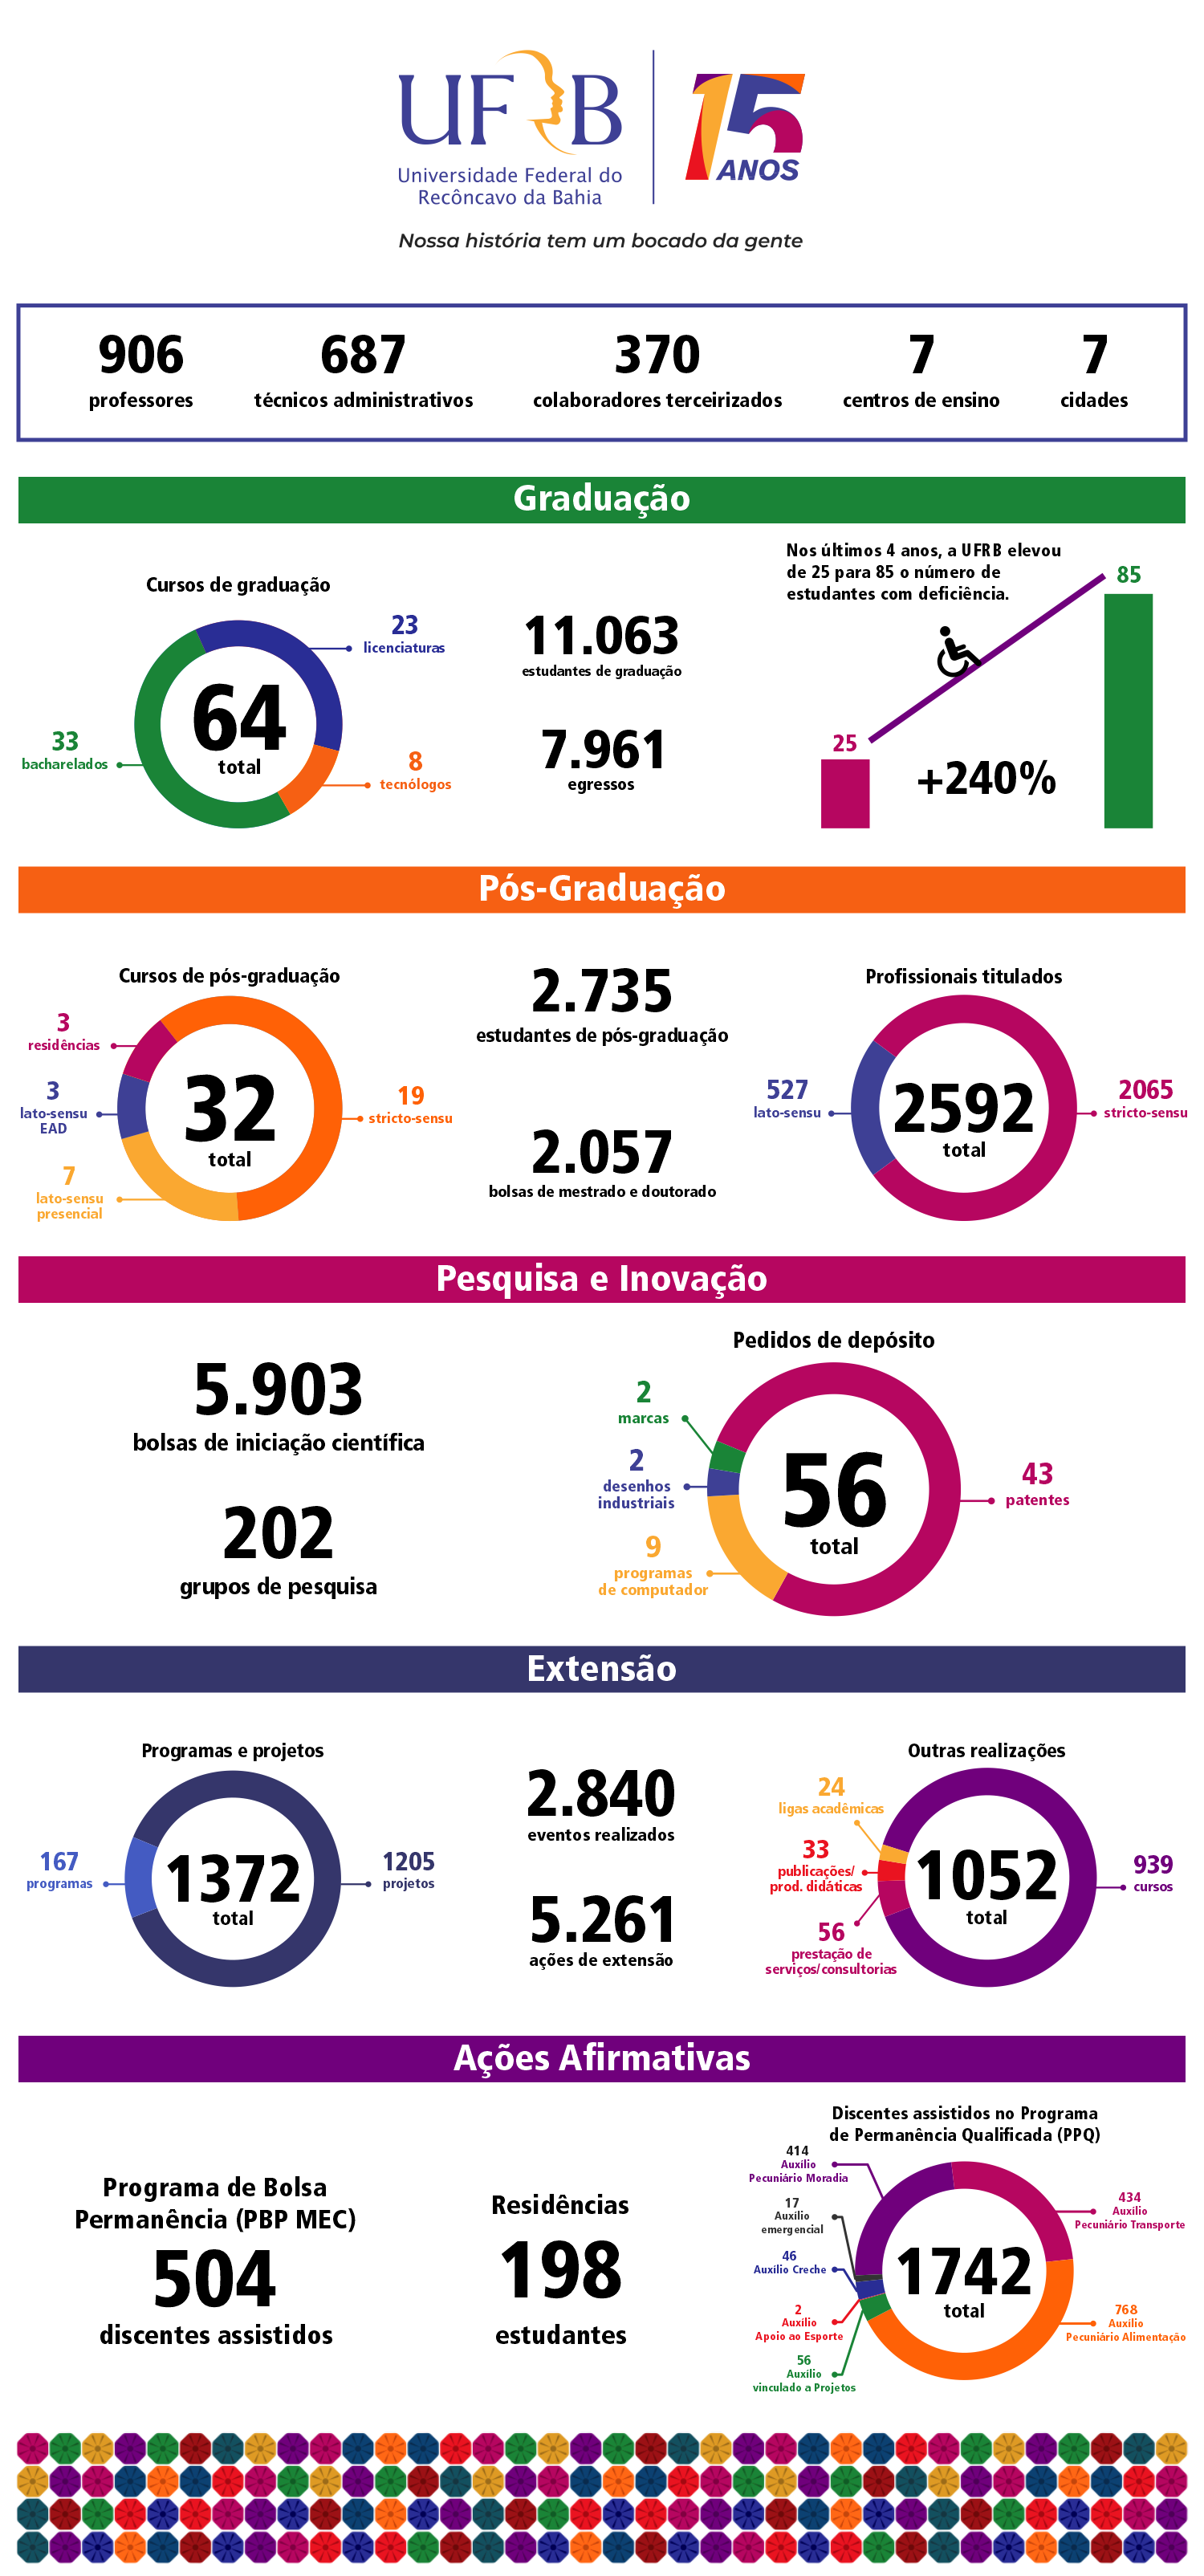 infografico ufrb15anos 2020